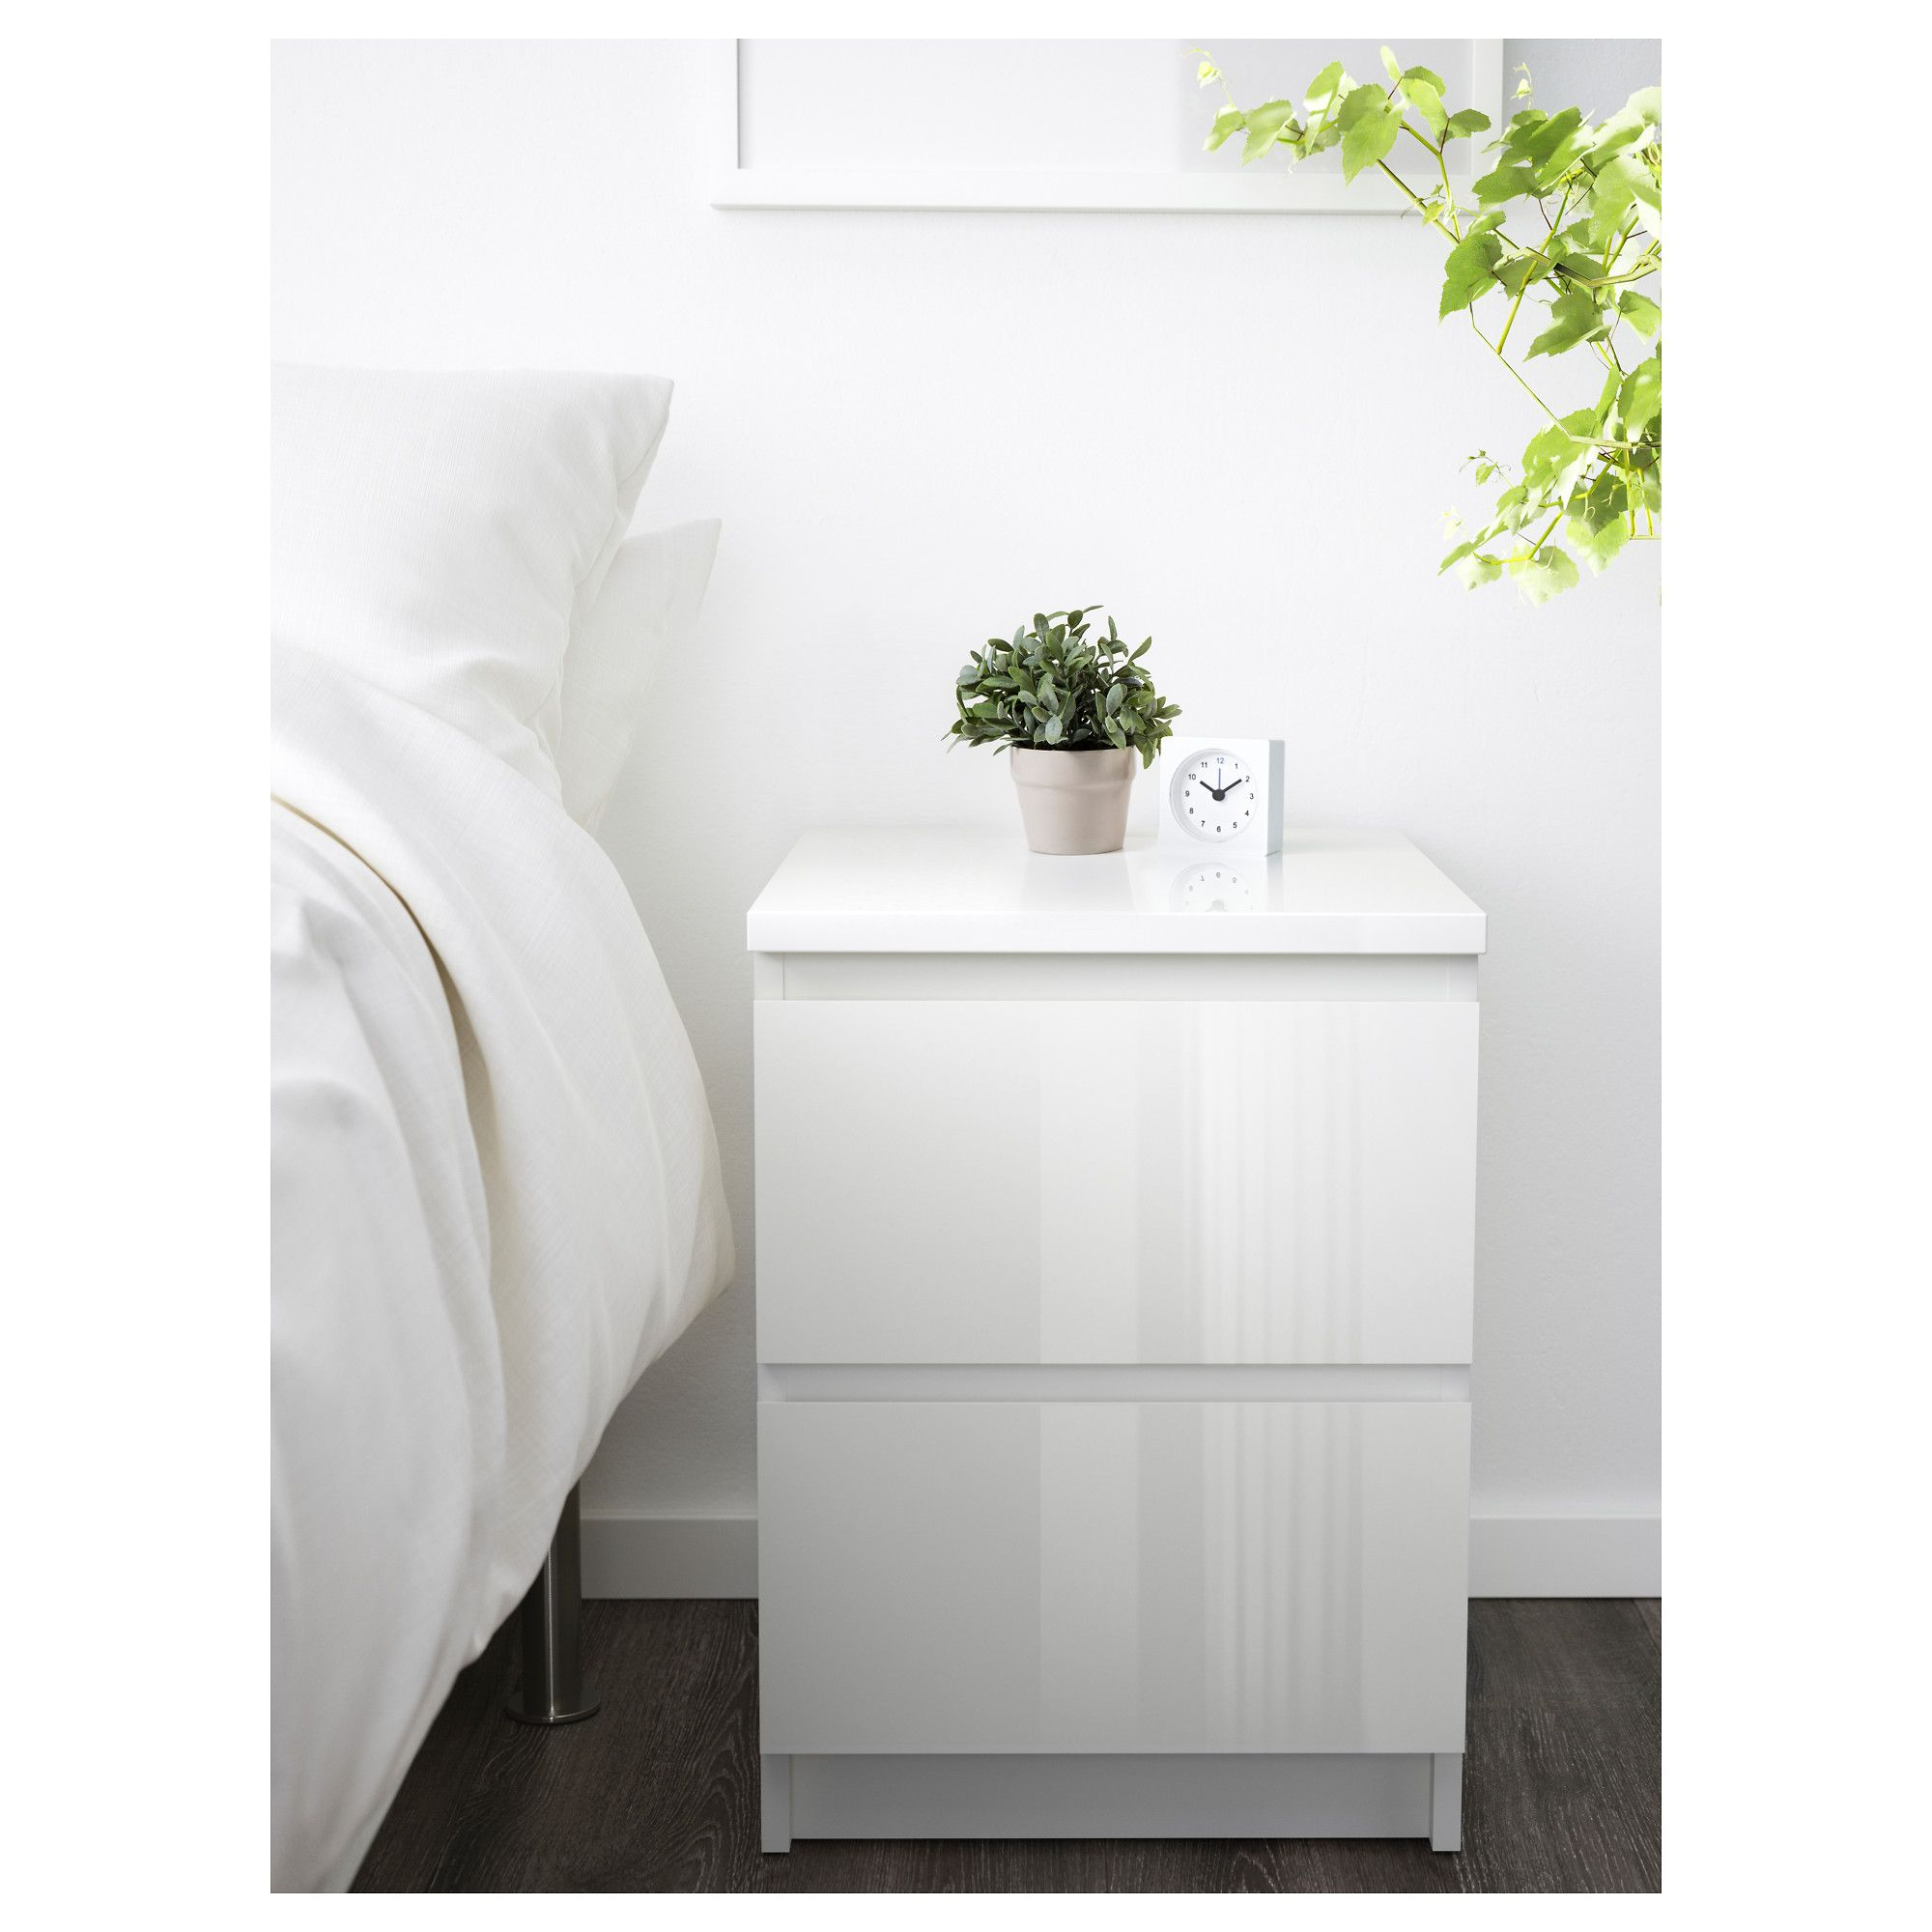 White Gloss Drawers Malm Chest Of 2 Drawers White High Gloss Ikea